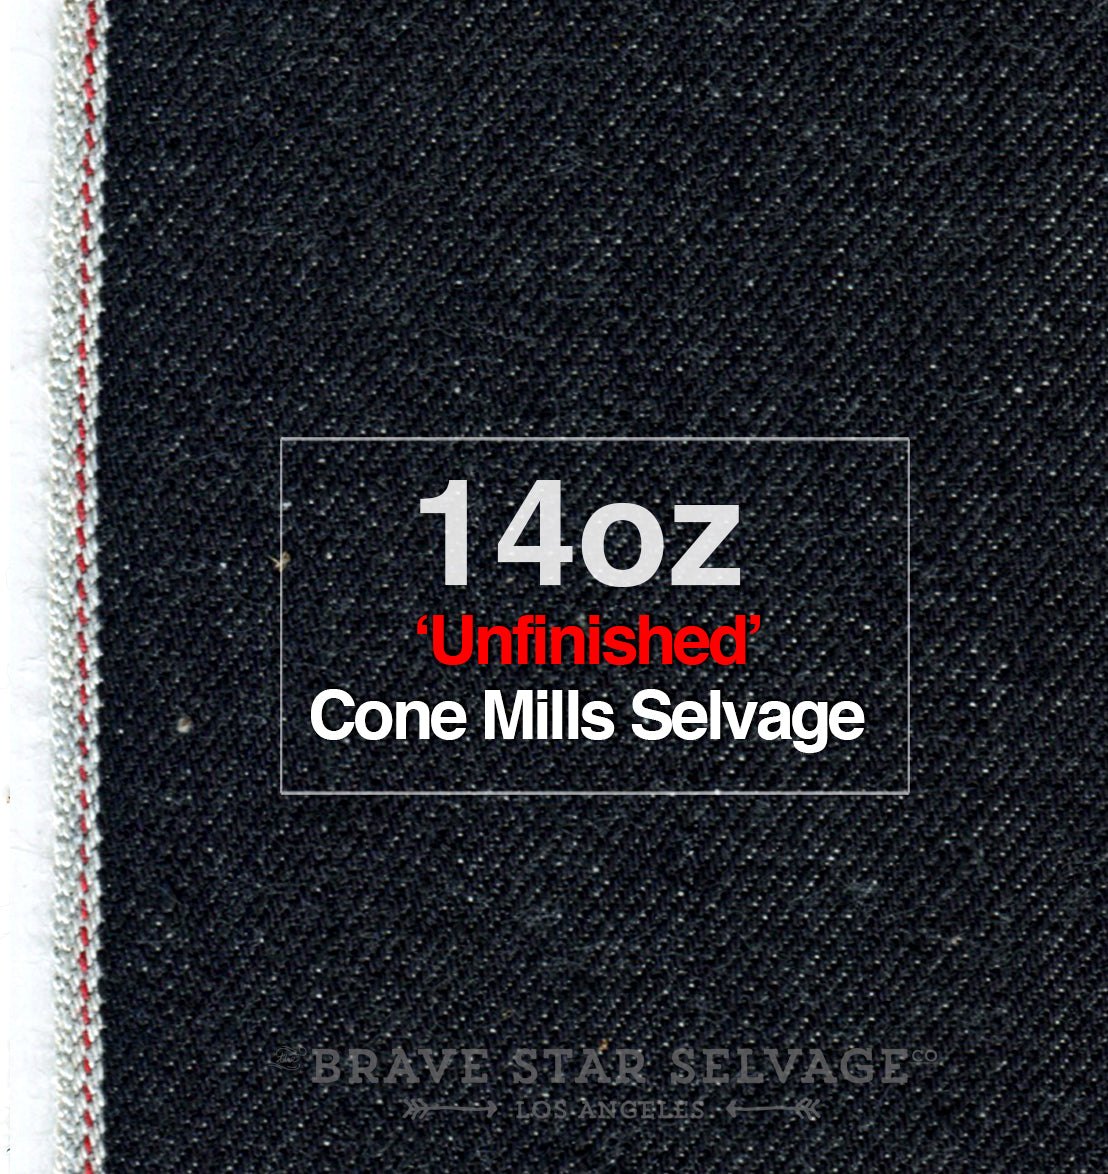 The Slim Taper 2.0 14oz 'Unfinished' Cone Mills Selvage